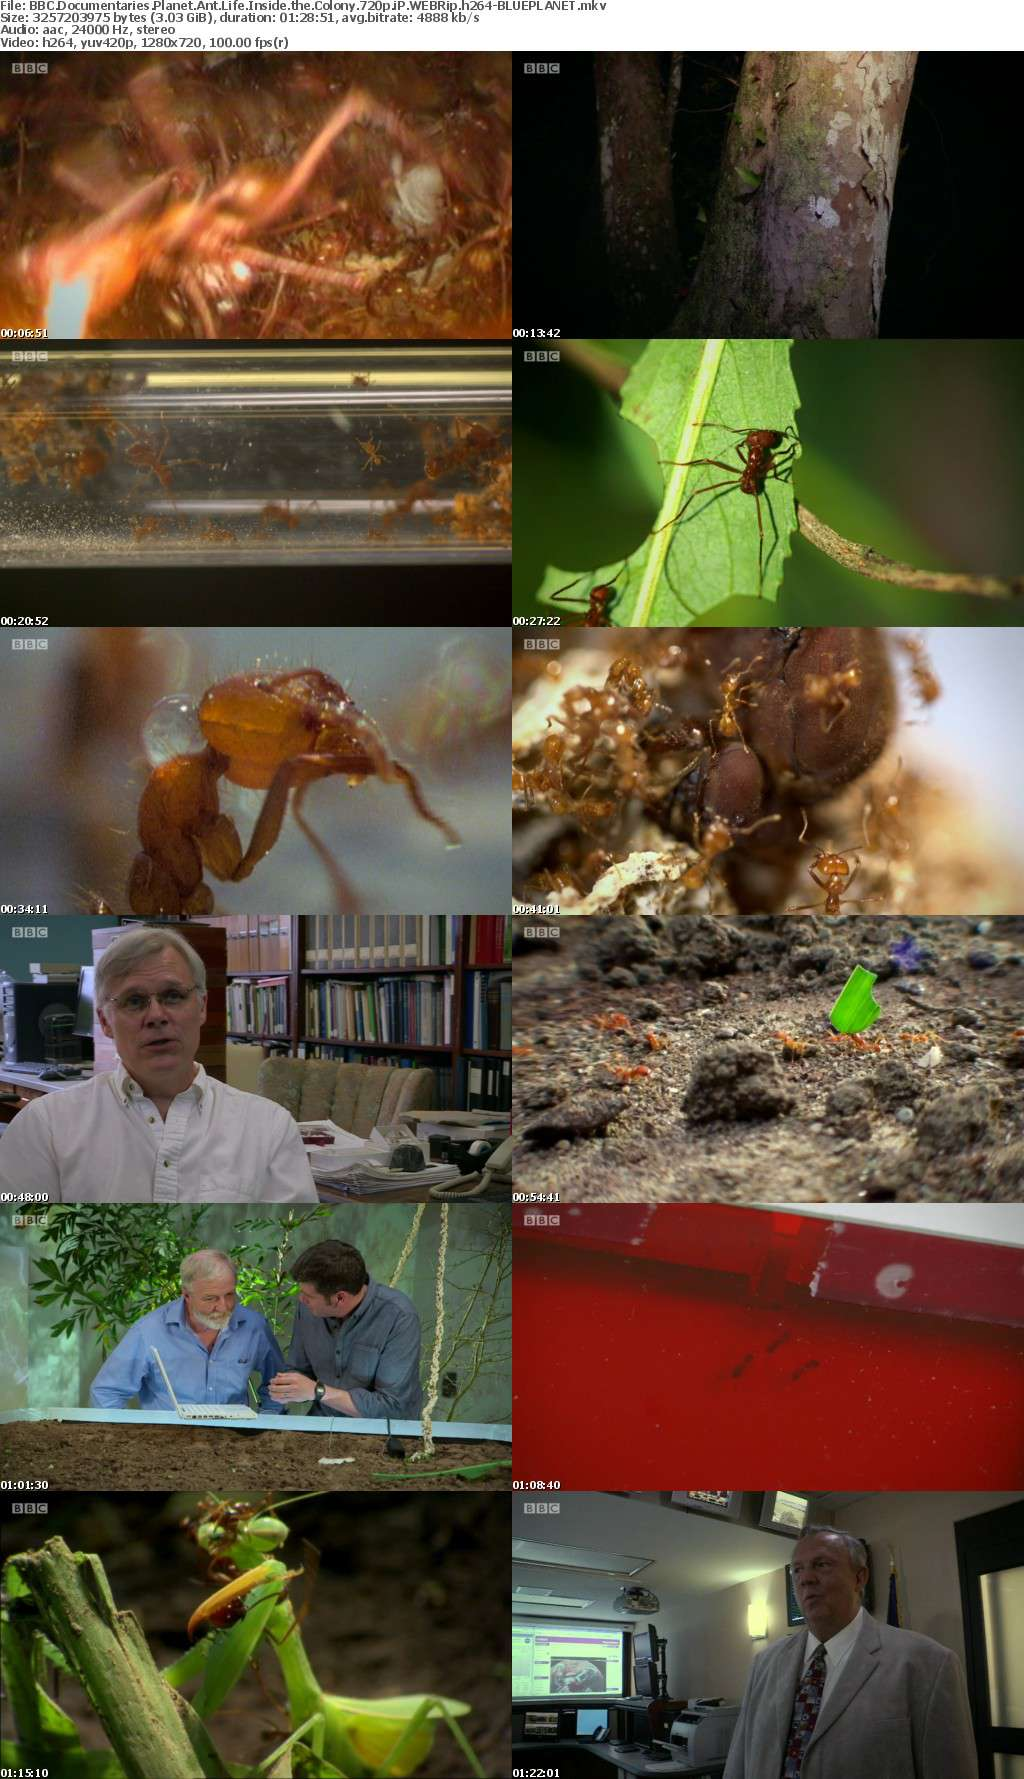 BBC Documentaries Planet Ant Life Inside the Colony 720p iP WEBRip h264-BLUEPLANET